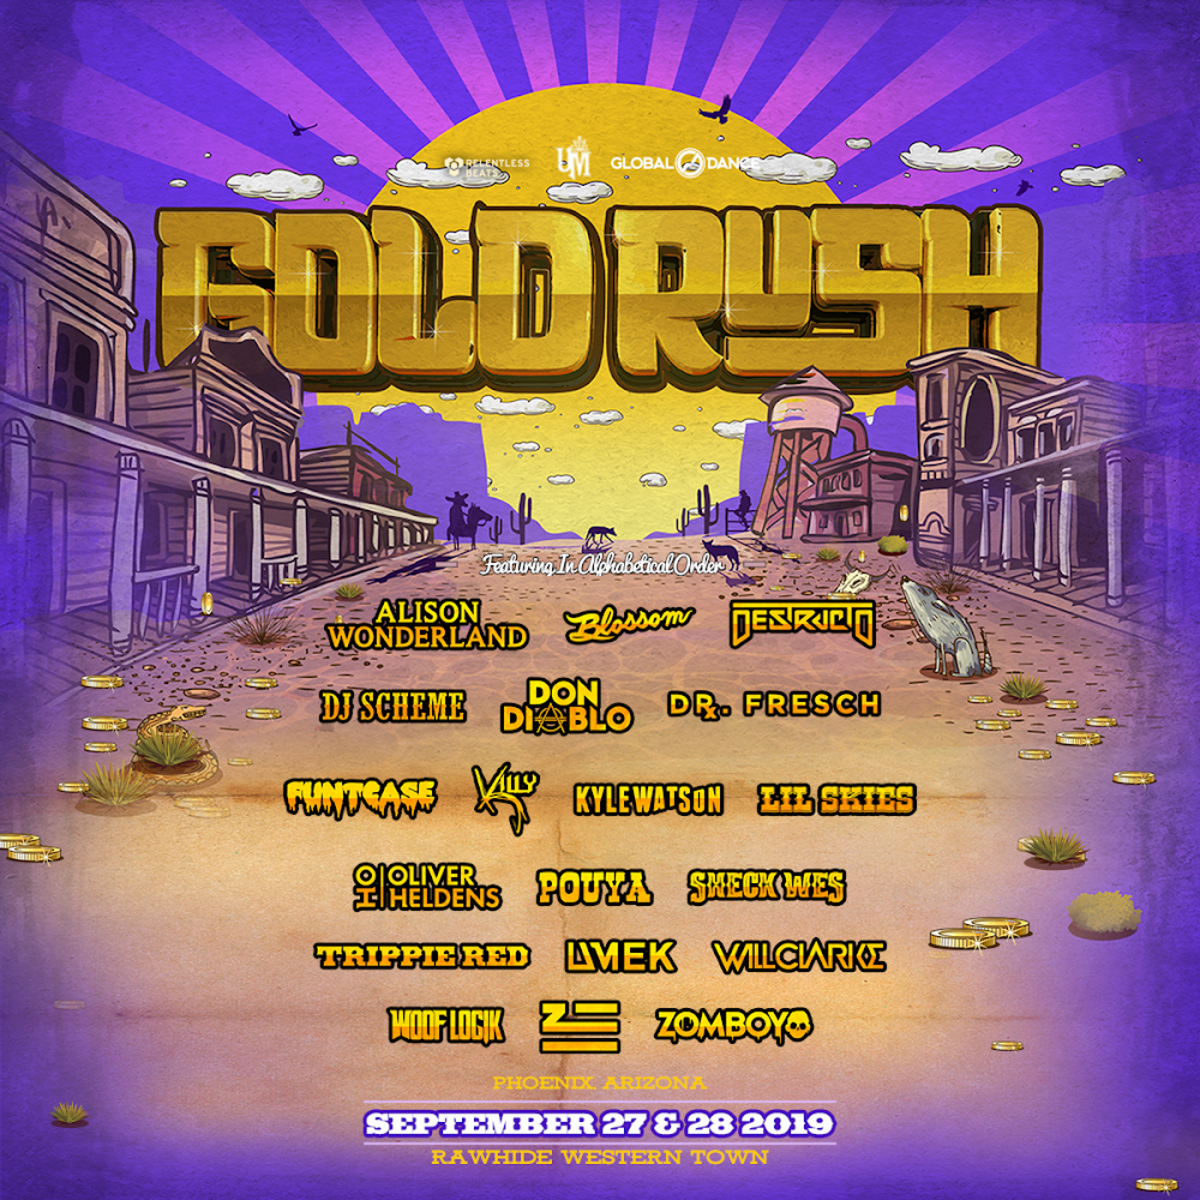 Goldrush Festival Arizona 2019 Phase 1 lineup